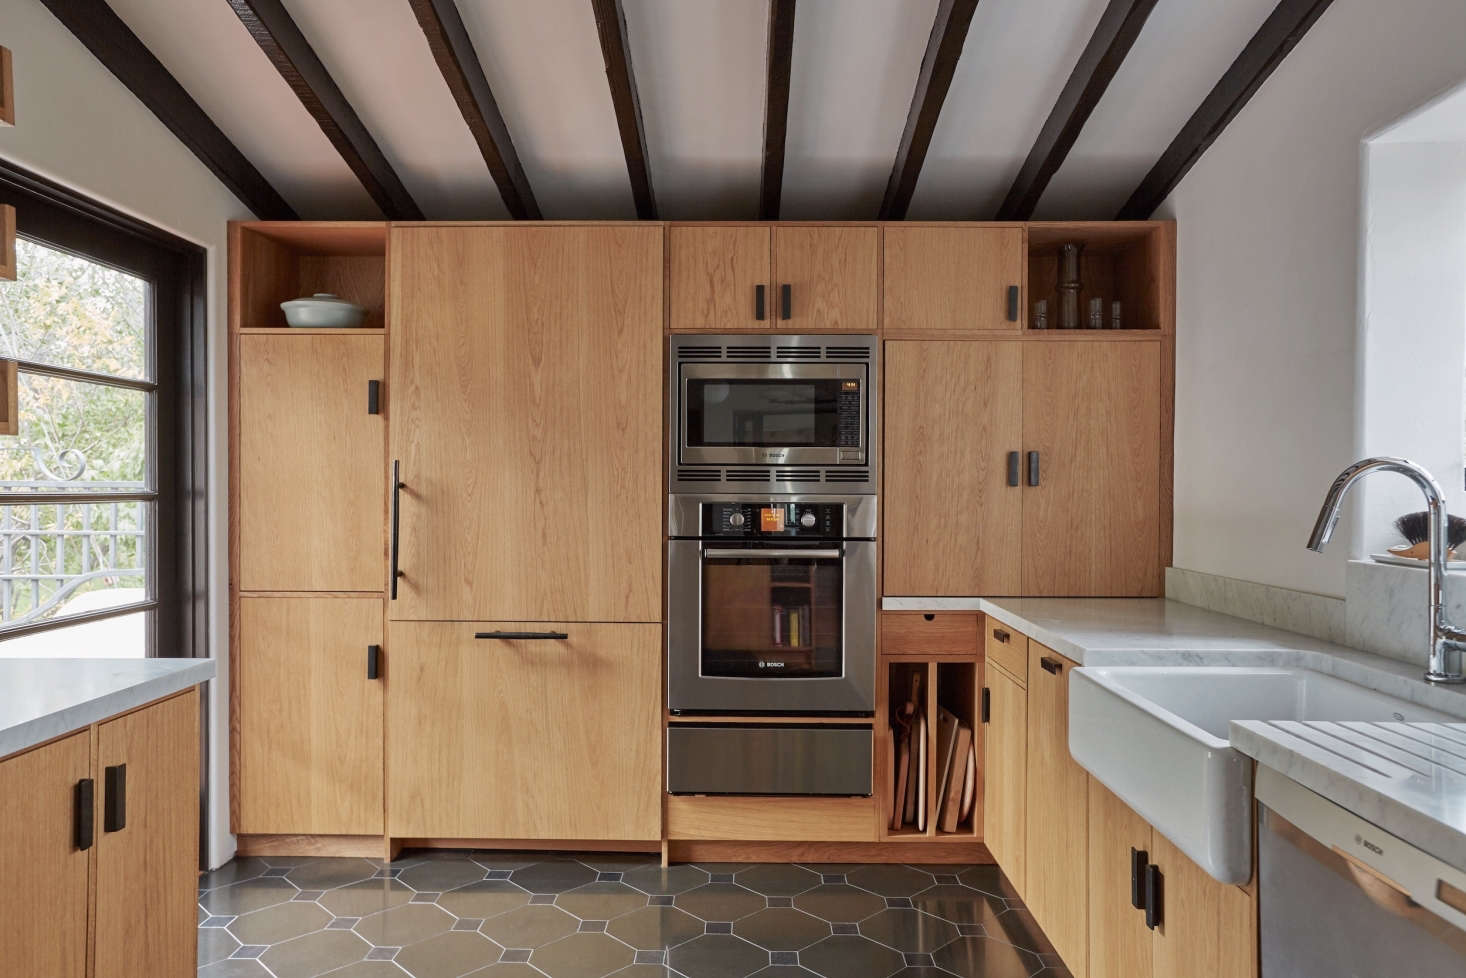 In A House La S Los Feliz Designer Tamar Barnoon Reconfigured An Outdated Kitchen